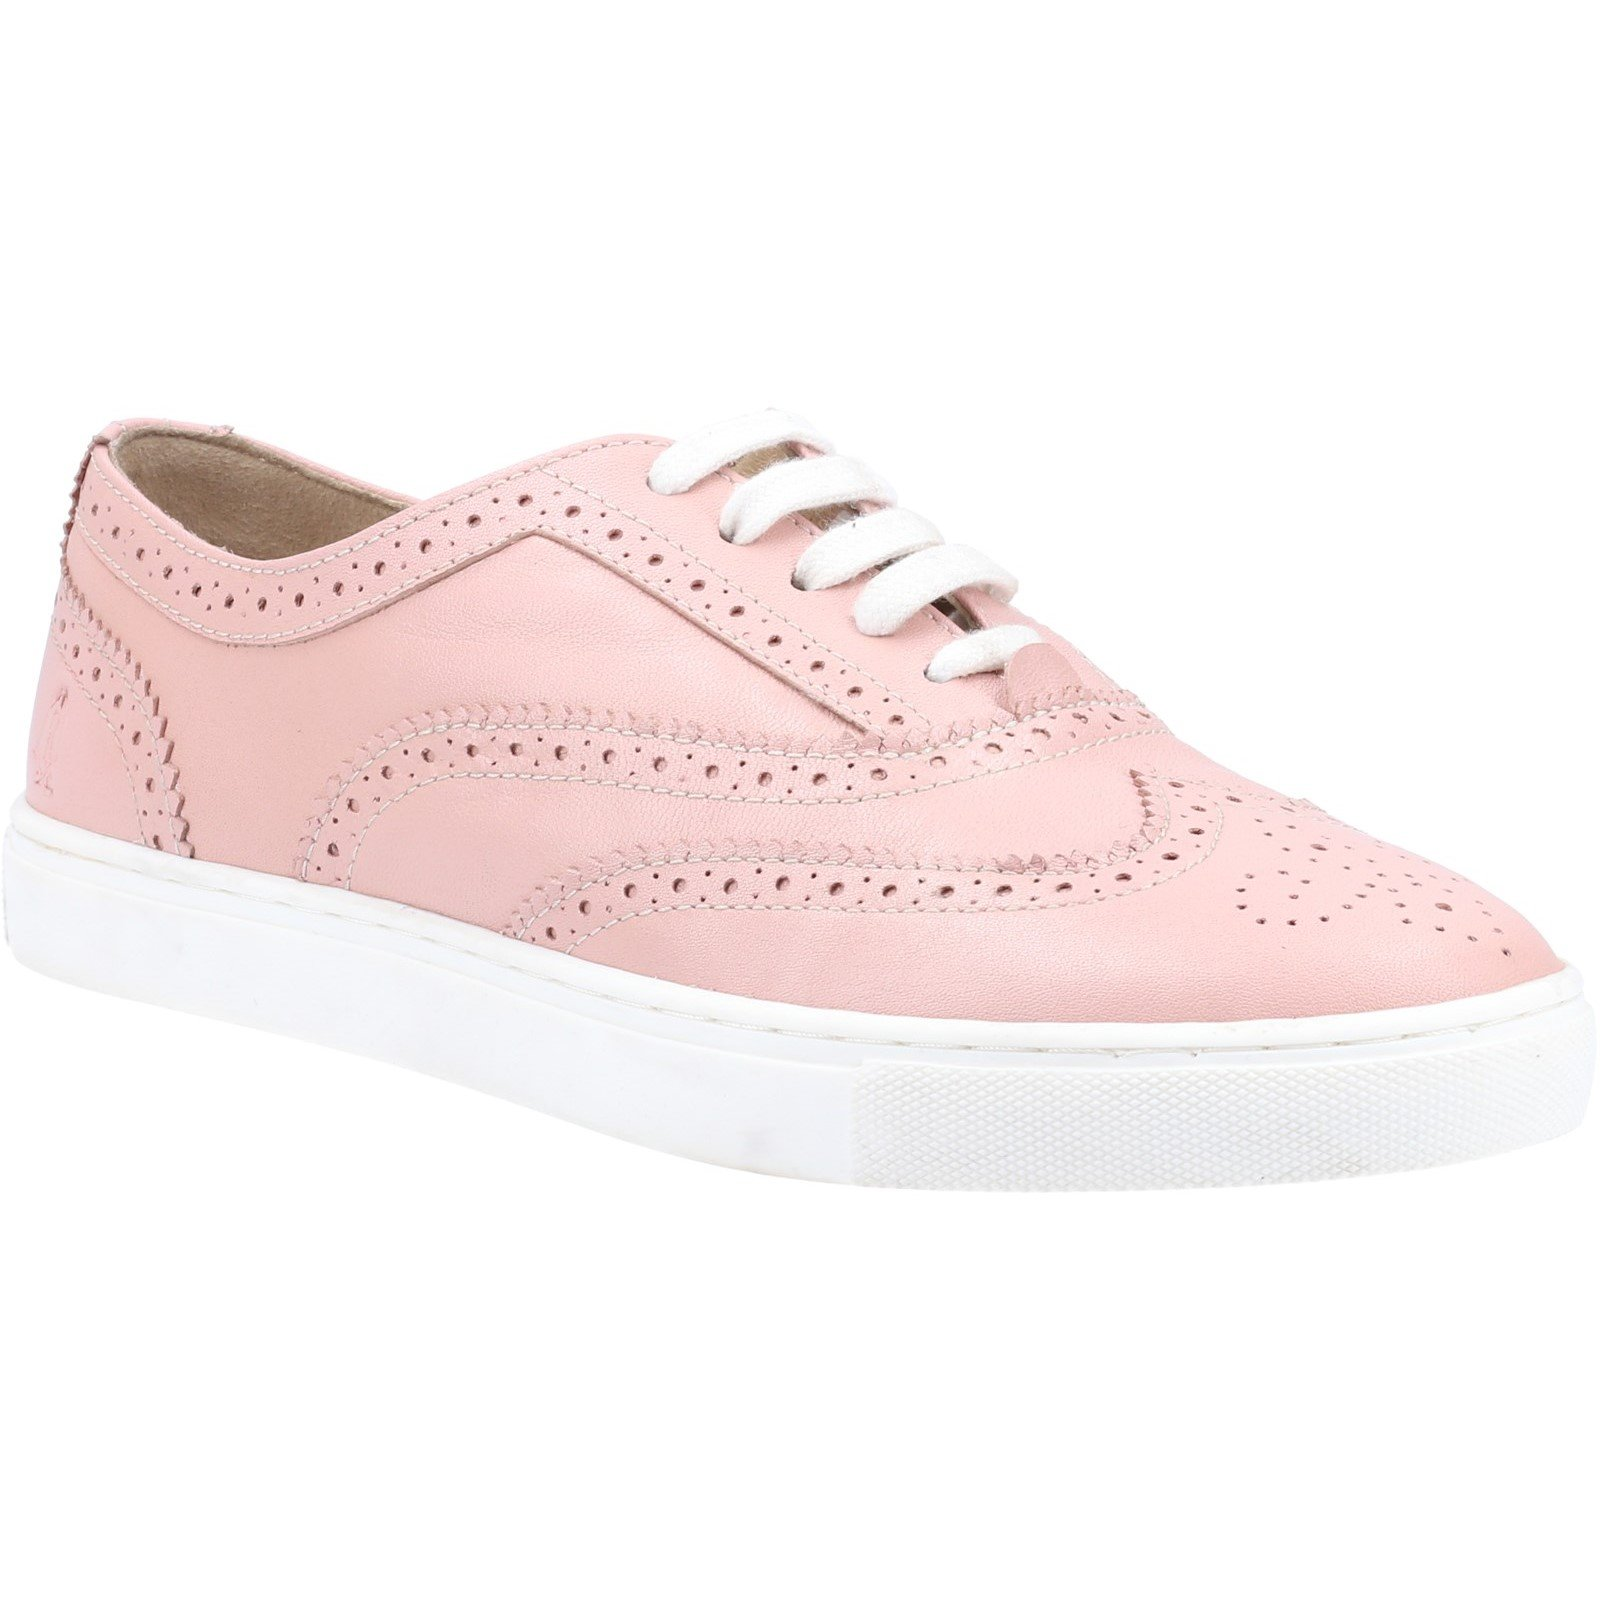 Hush Puppies Women's Tammy Trainer Various Colours 32847 - Blush 5